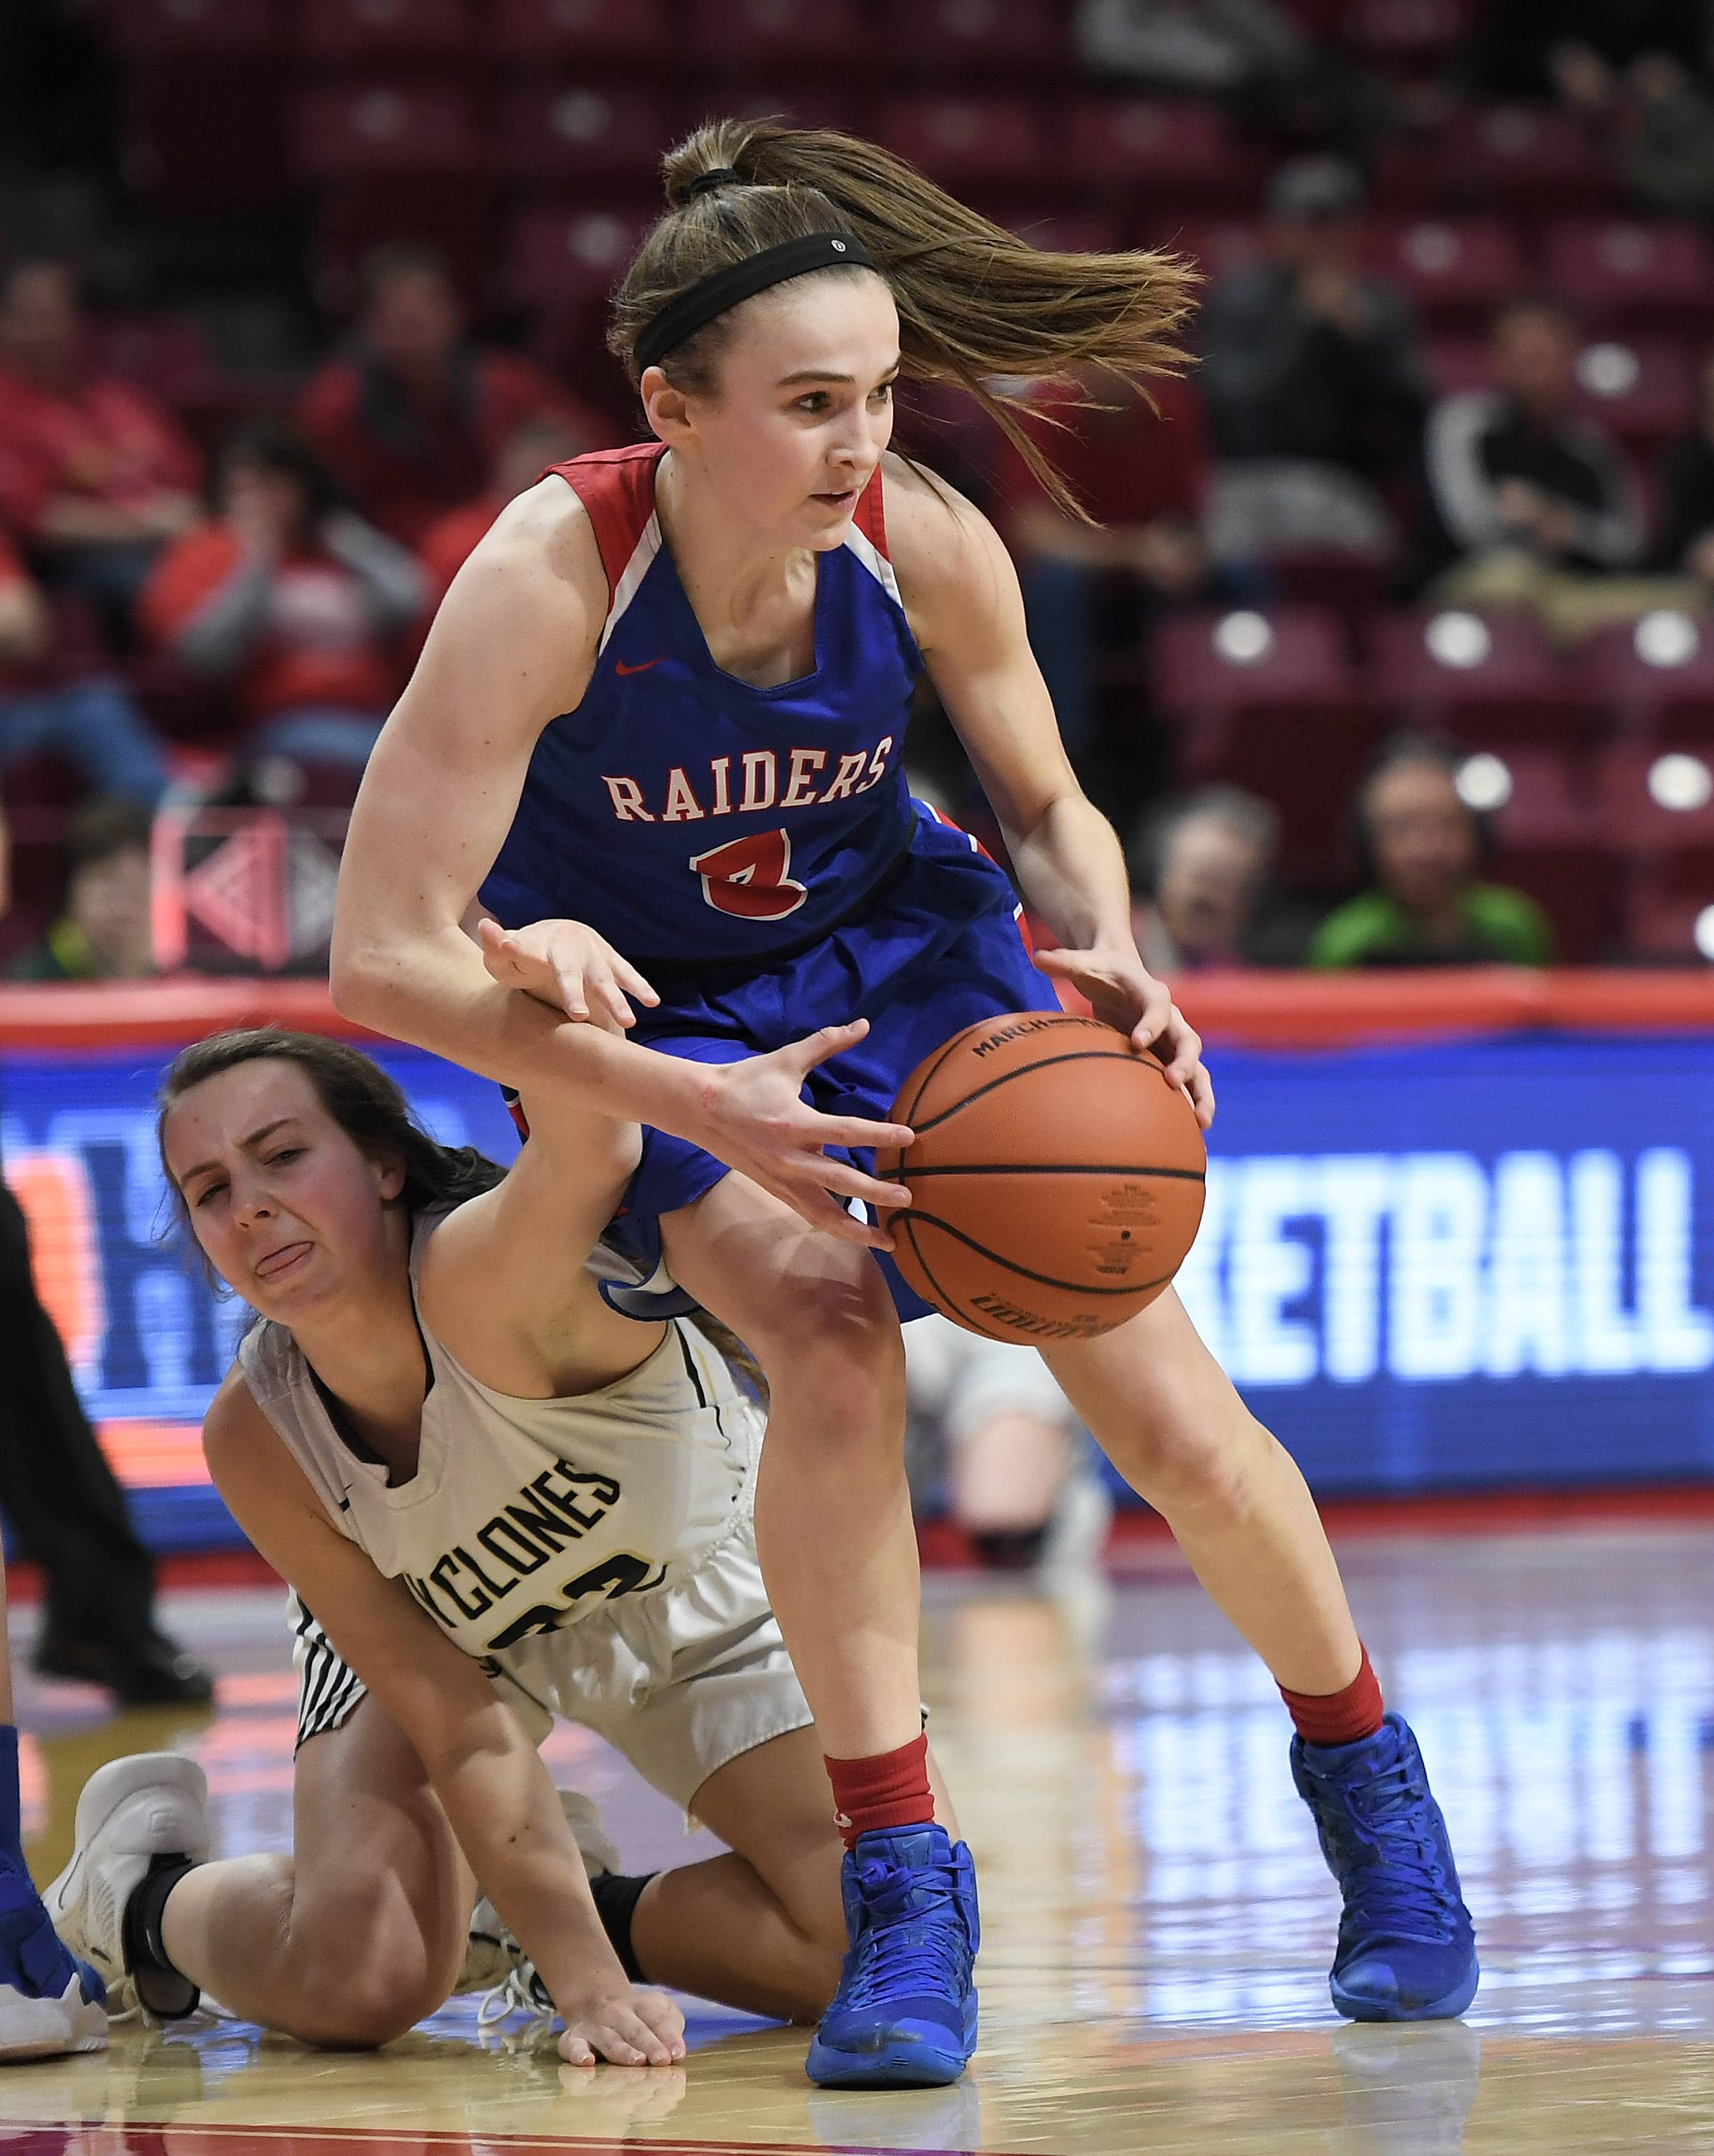 Glenbard South's Lauren Cohen gets tangled up with Sacred Heart-Griffin's defense and passes off the ball to her teammate during the fourth quarter of play during IHSA girls state basketball Class 3A semifinals at Normal on Friday.